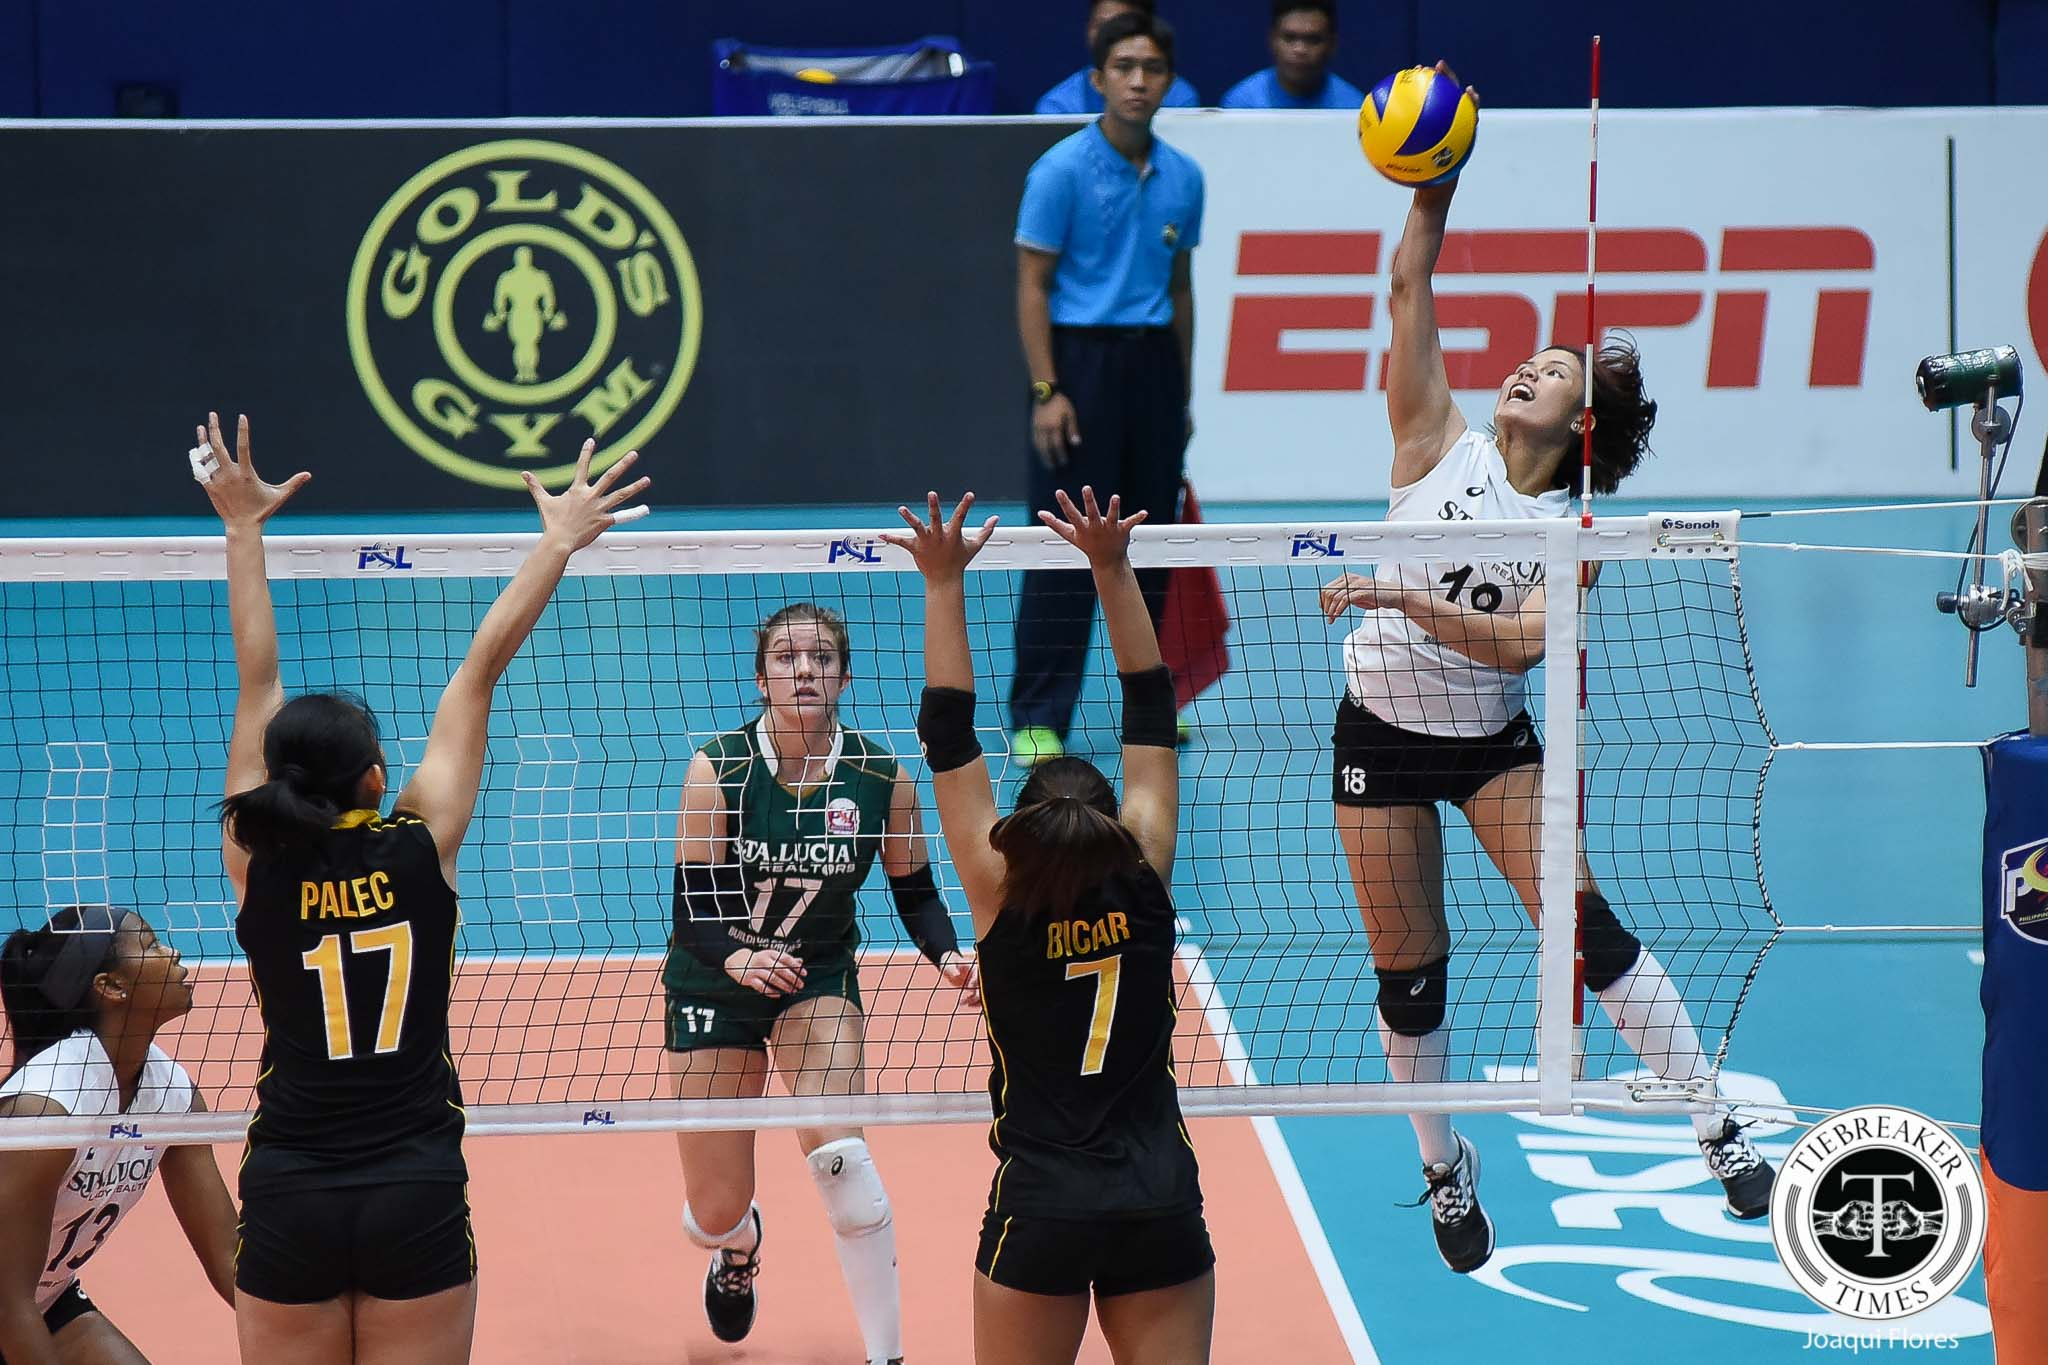 Philippine Sports News - Tiebreaker Times Sta. Lucia earns first win, keeps UST struggling News PSL UST Volleyball  Victoria Sports-UST Tigresses UST Women's Volleyball Sta. Lucia Lady Realtors Rebecca Rivera Paul Jan Dolorian Pam Lastimosa Mary Pacres Kristen Moncks Jerry Yee Chooks-to-Go Carla Sandoval Bohdana Anisova 2017 PSL Season 2017 PSL Grand Prix